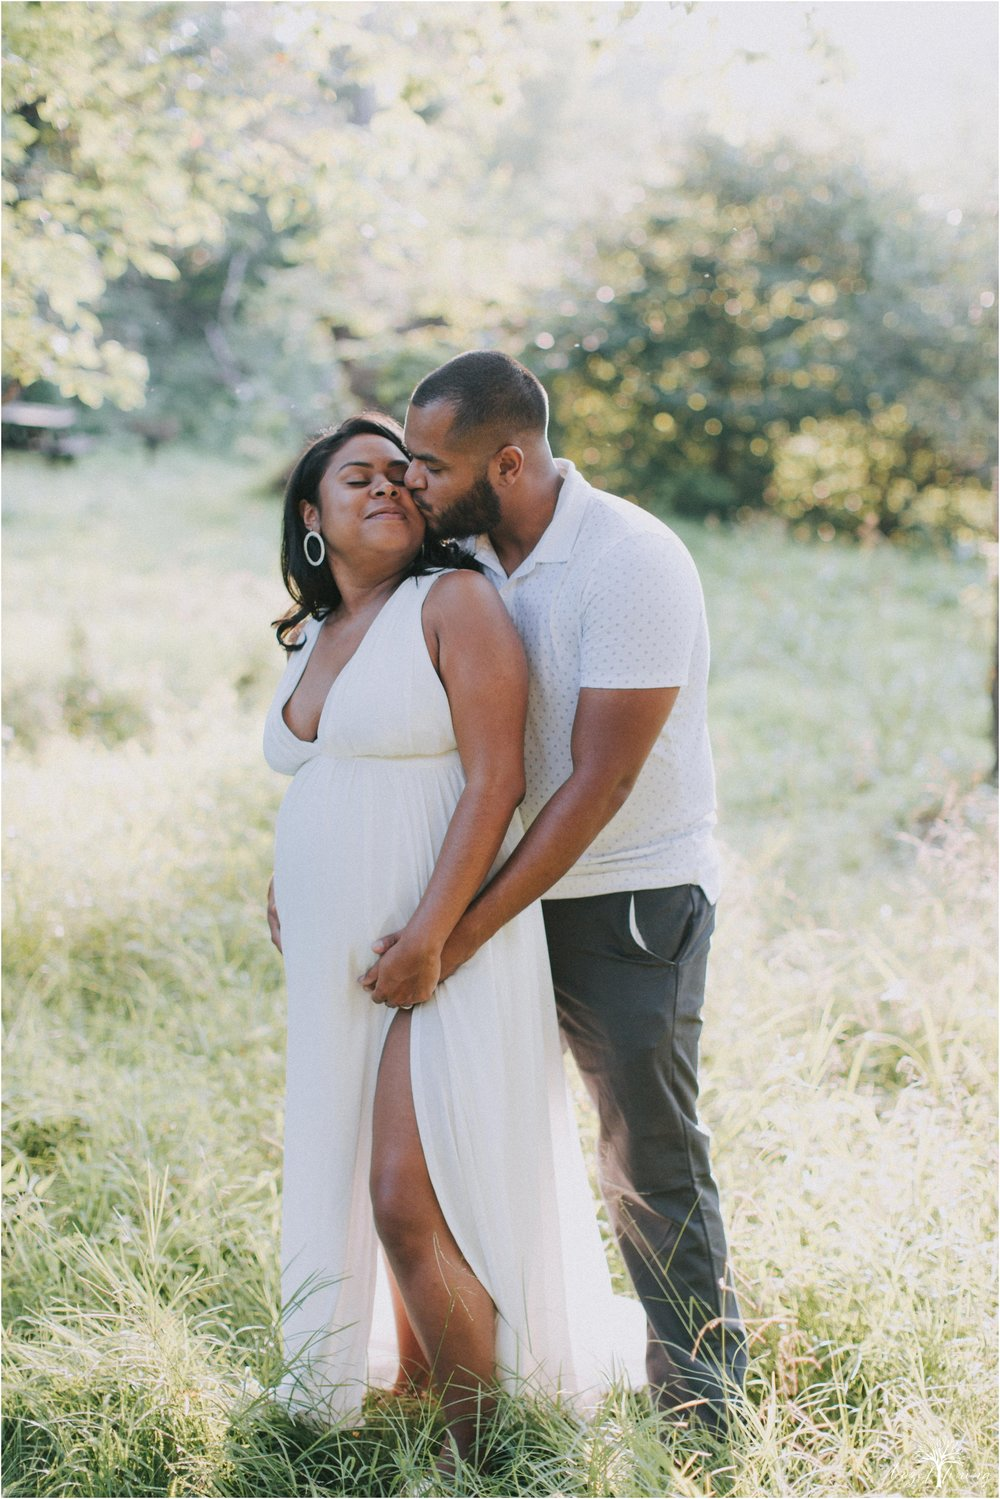 leyka-kristofer-chaparro-ralph-stover-state-park-summer-golden-hour-stream-maternity-session-hazel-lining-travel-wedding-elopement-photography_0022.jpg